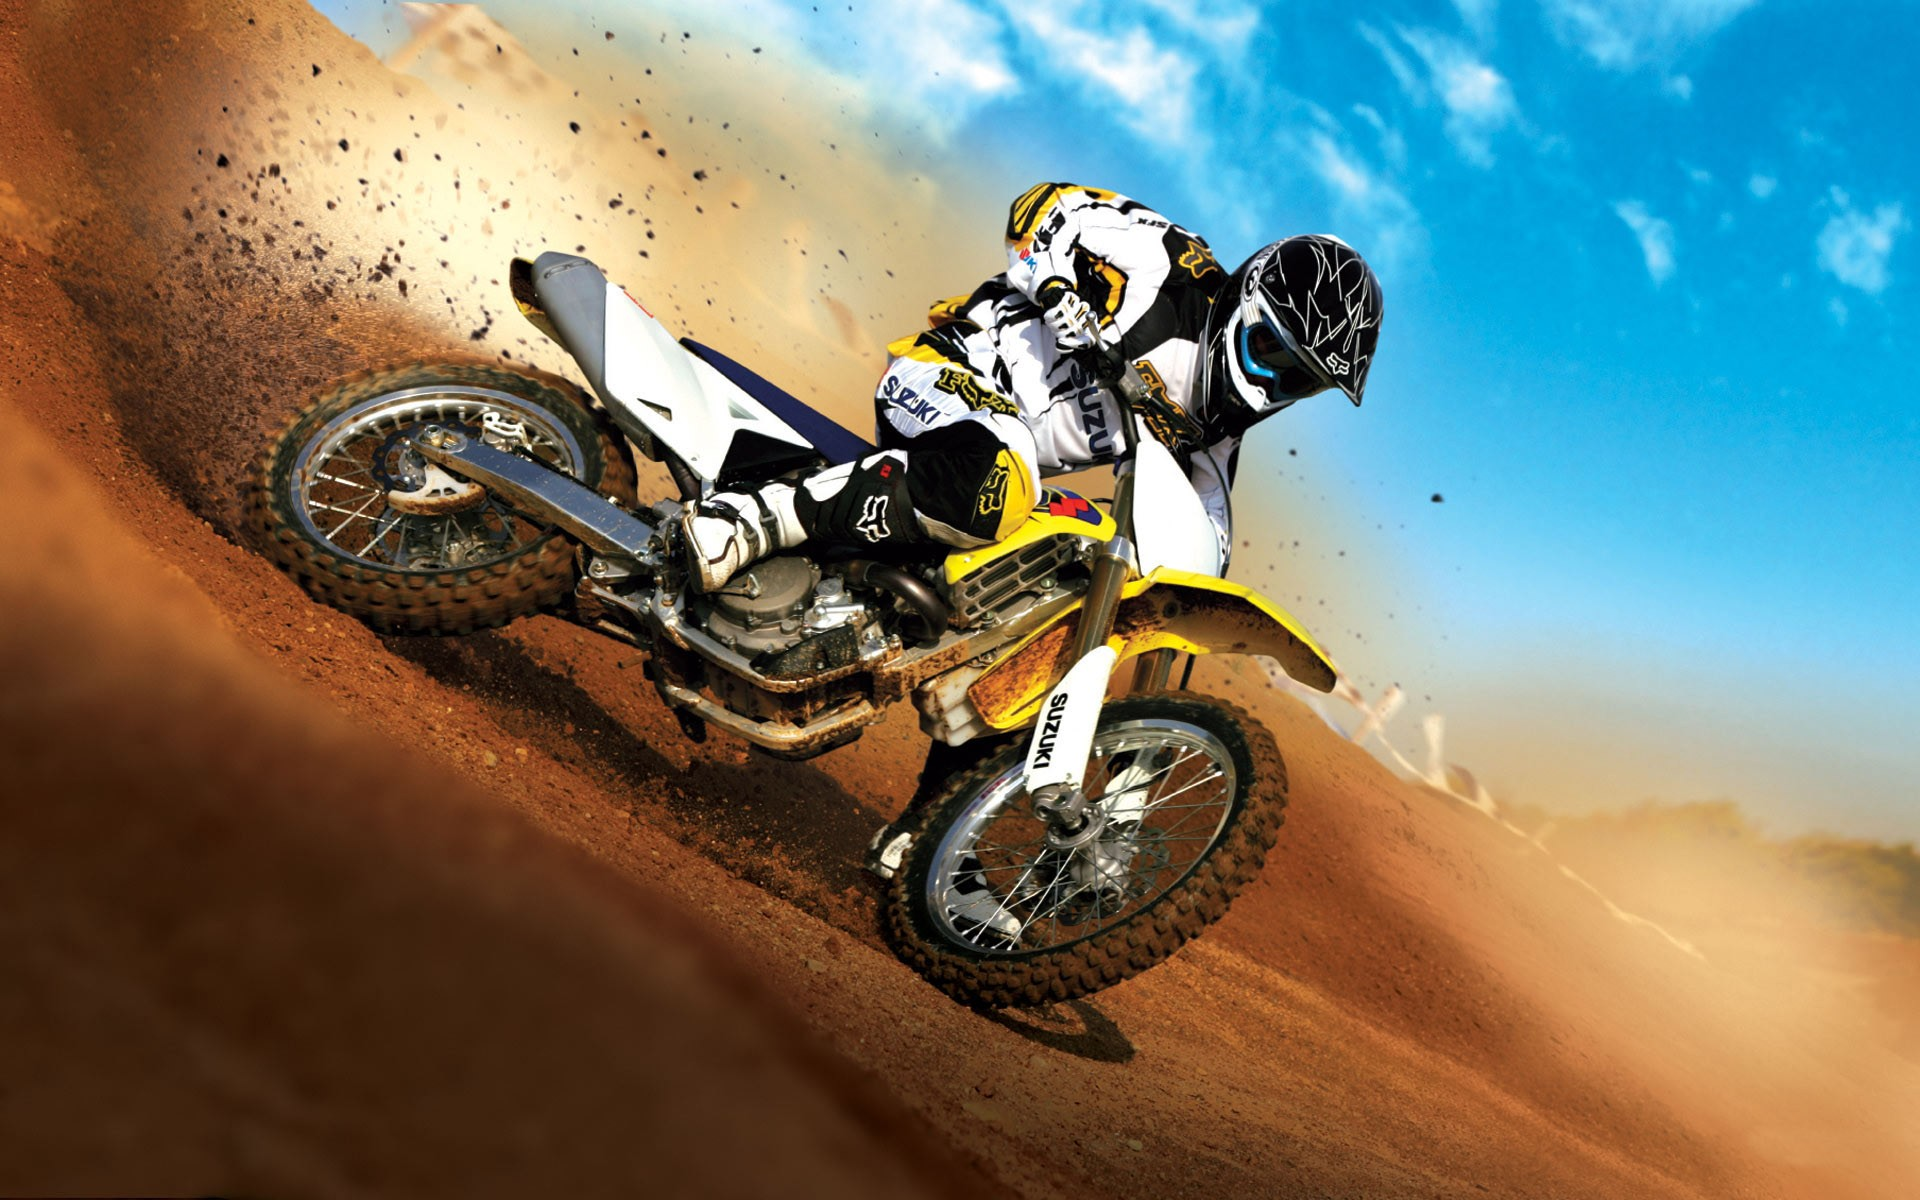 Off Road Moto Hd Wallpaper 1 40 1920x1200 Fondos De